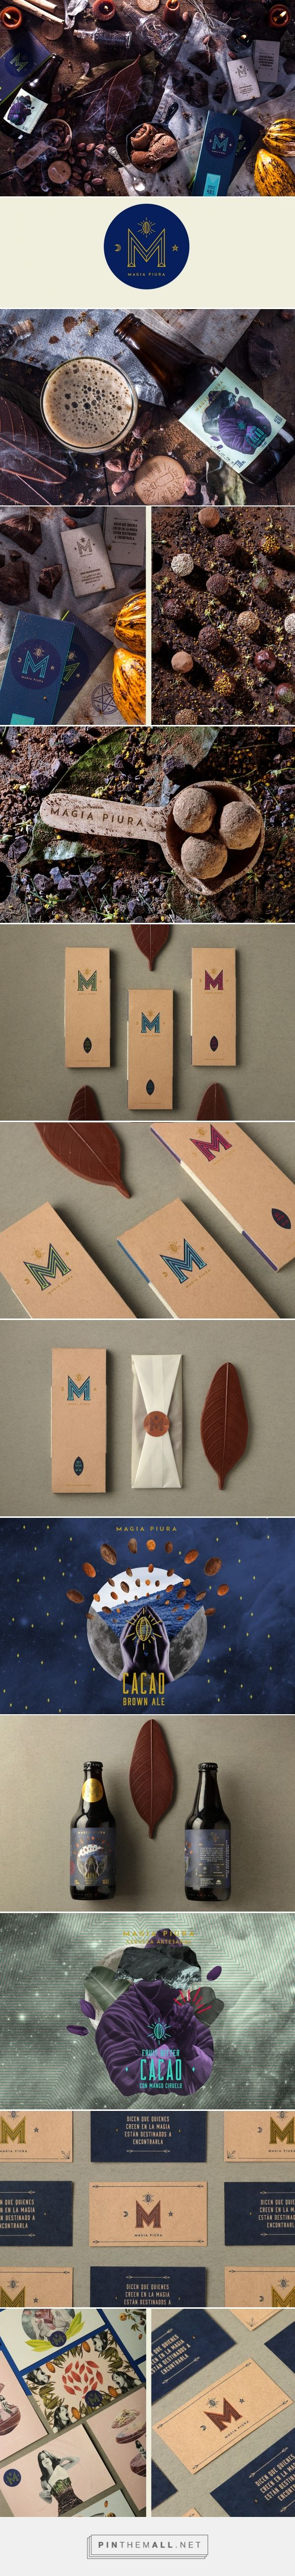 Magia Piura Chocolate Branding and Packaging by Alejandro Gavancho   Fivestar Branding Agency – Design and Branding Agency & Curated Inspiration Gallery